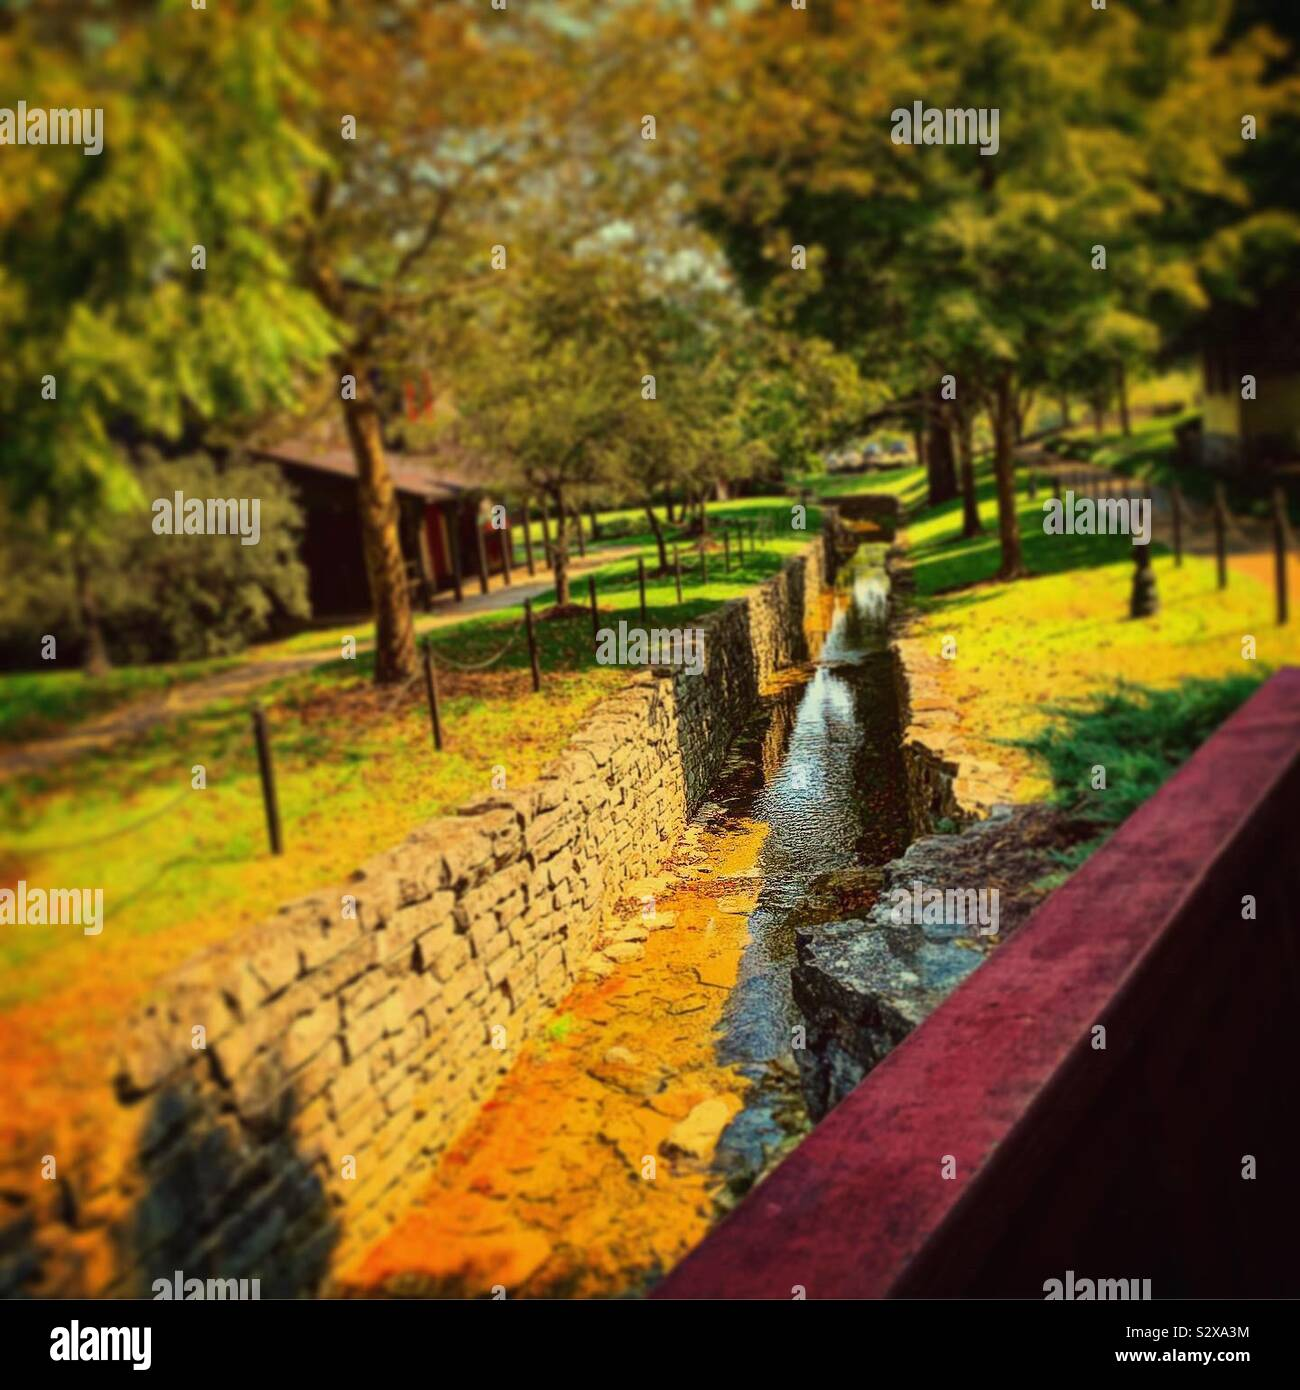 Makers mark distillery water flow it's a beautiful scenery of the property Foto de stock